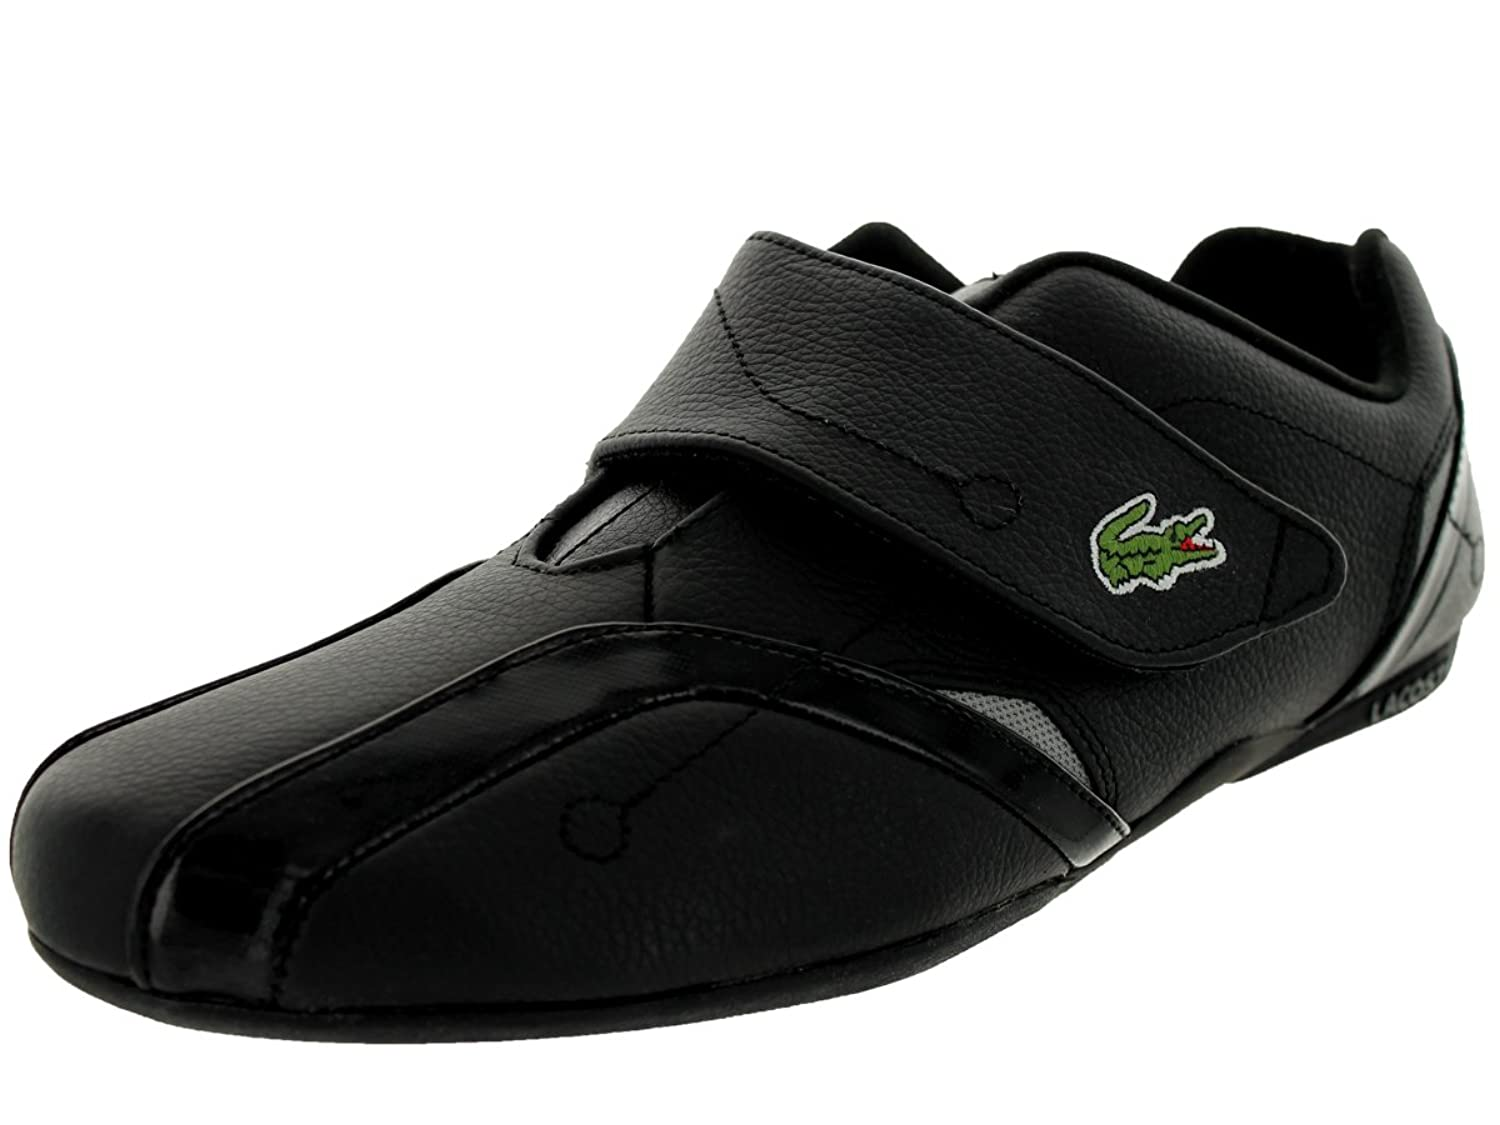 lacoste protect